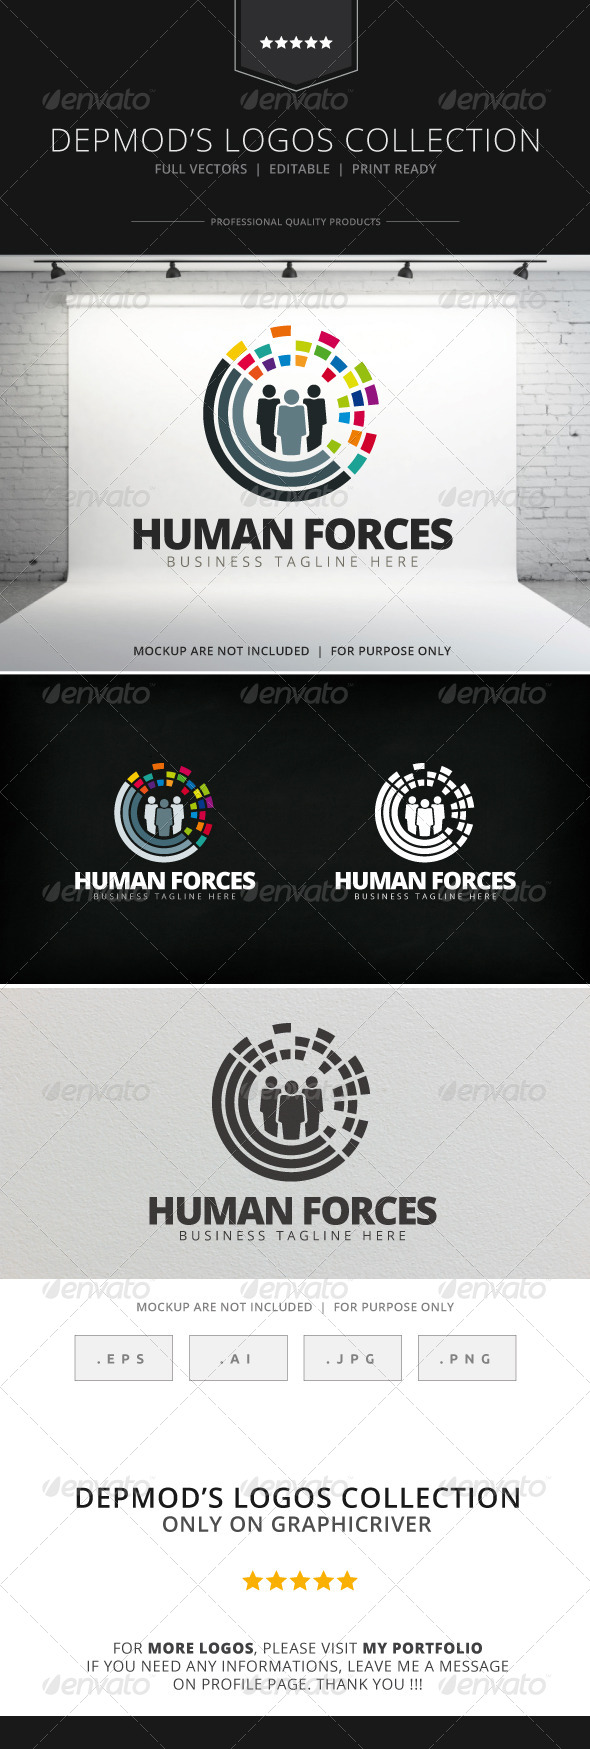 GraphicRiver Human Forces Logo 7849165